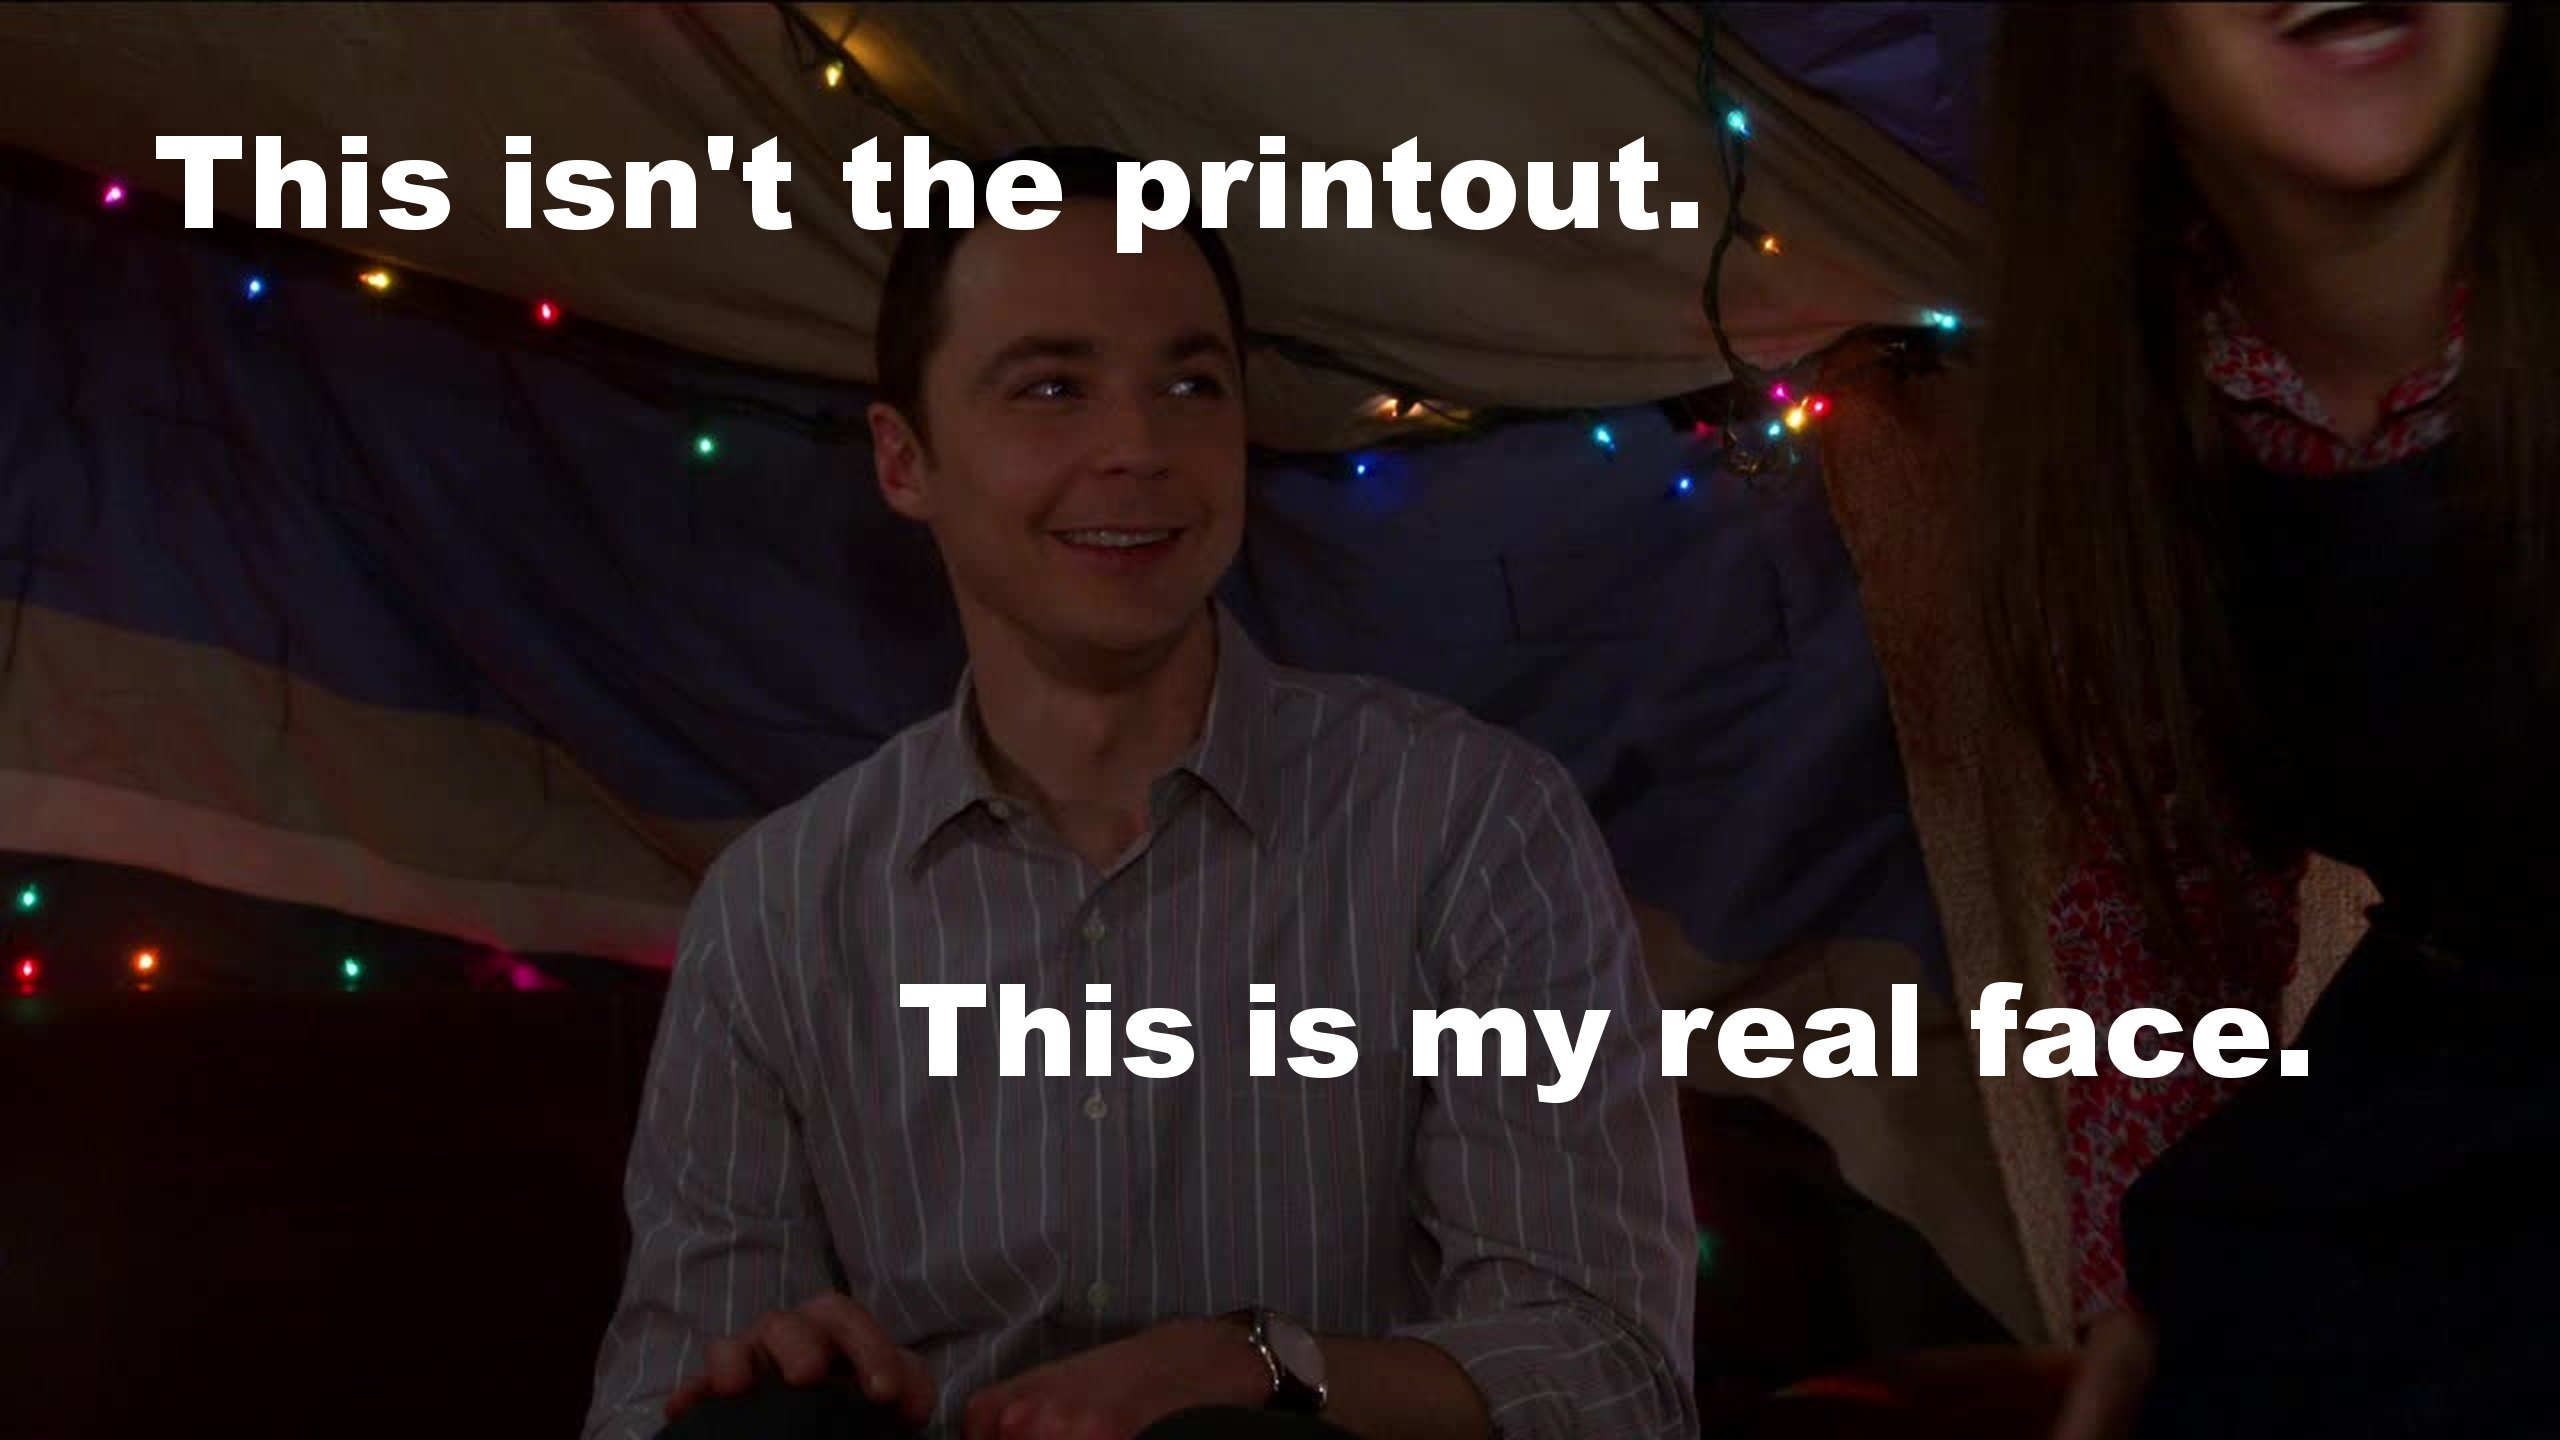 Sheldon as hilarious as always  :))